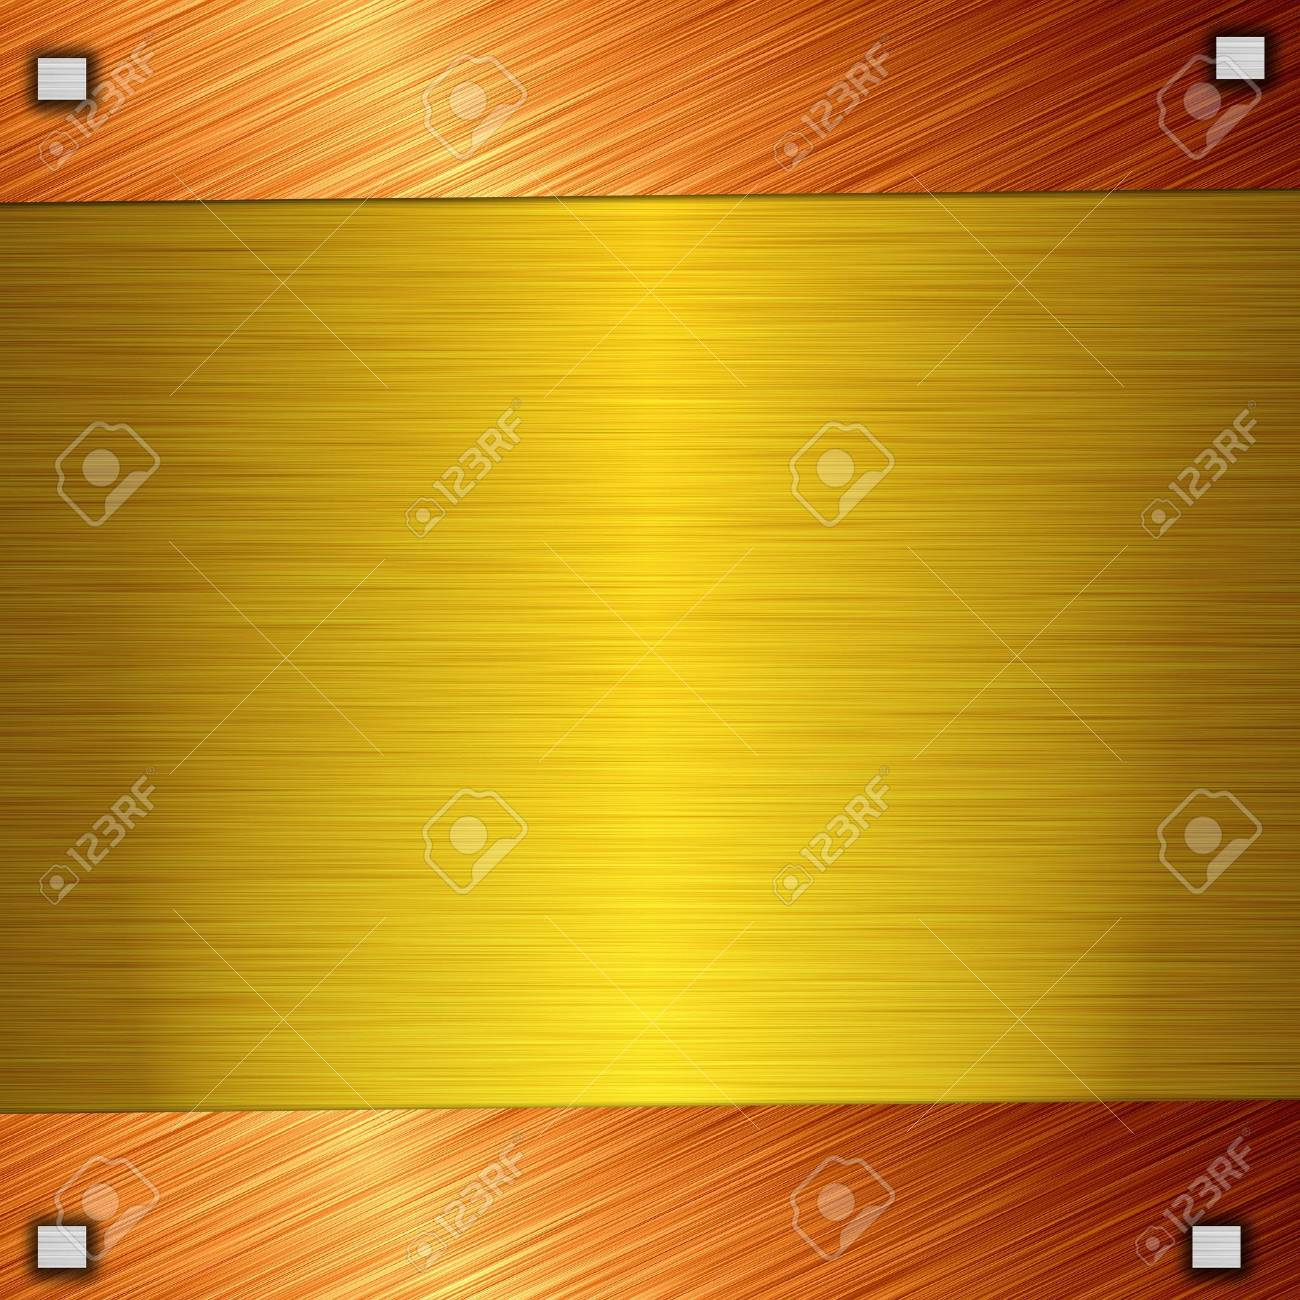 metal banner Stock Photo - 11834136